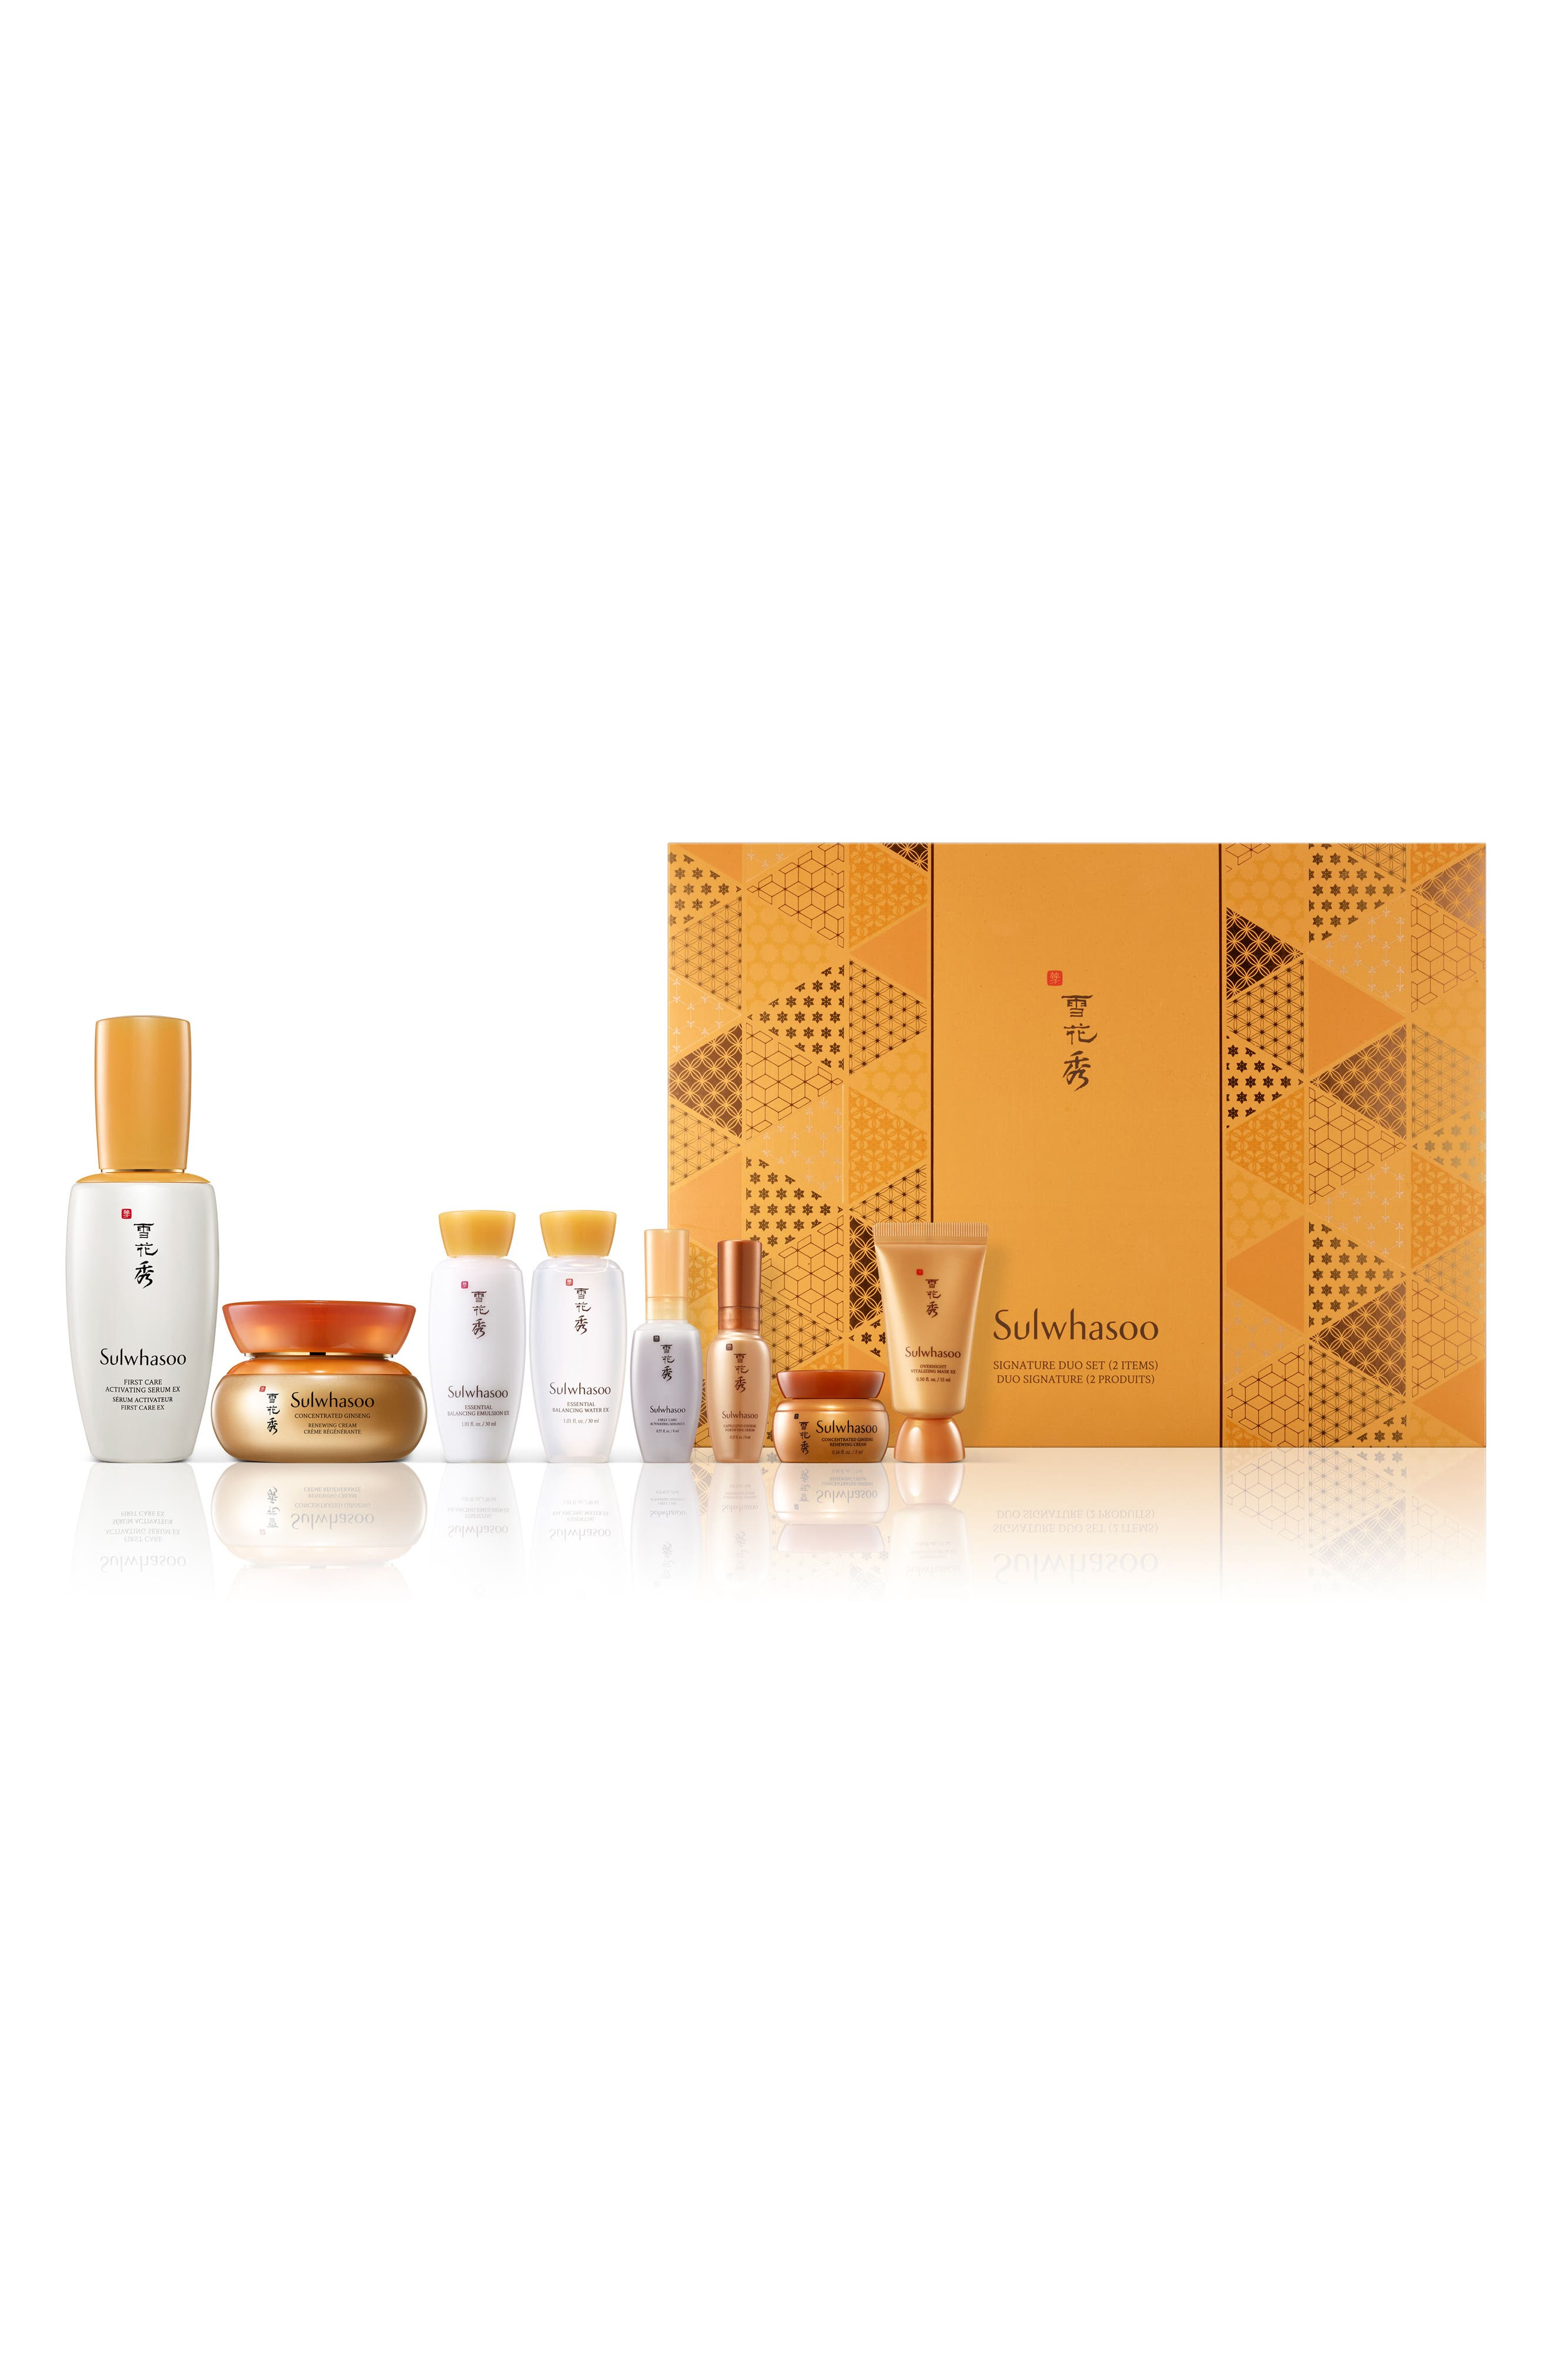 Sulwhasoo Signature Set ($425 Value)